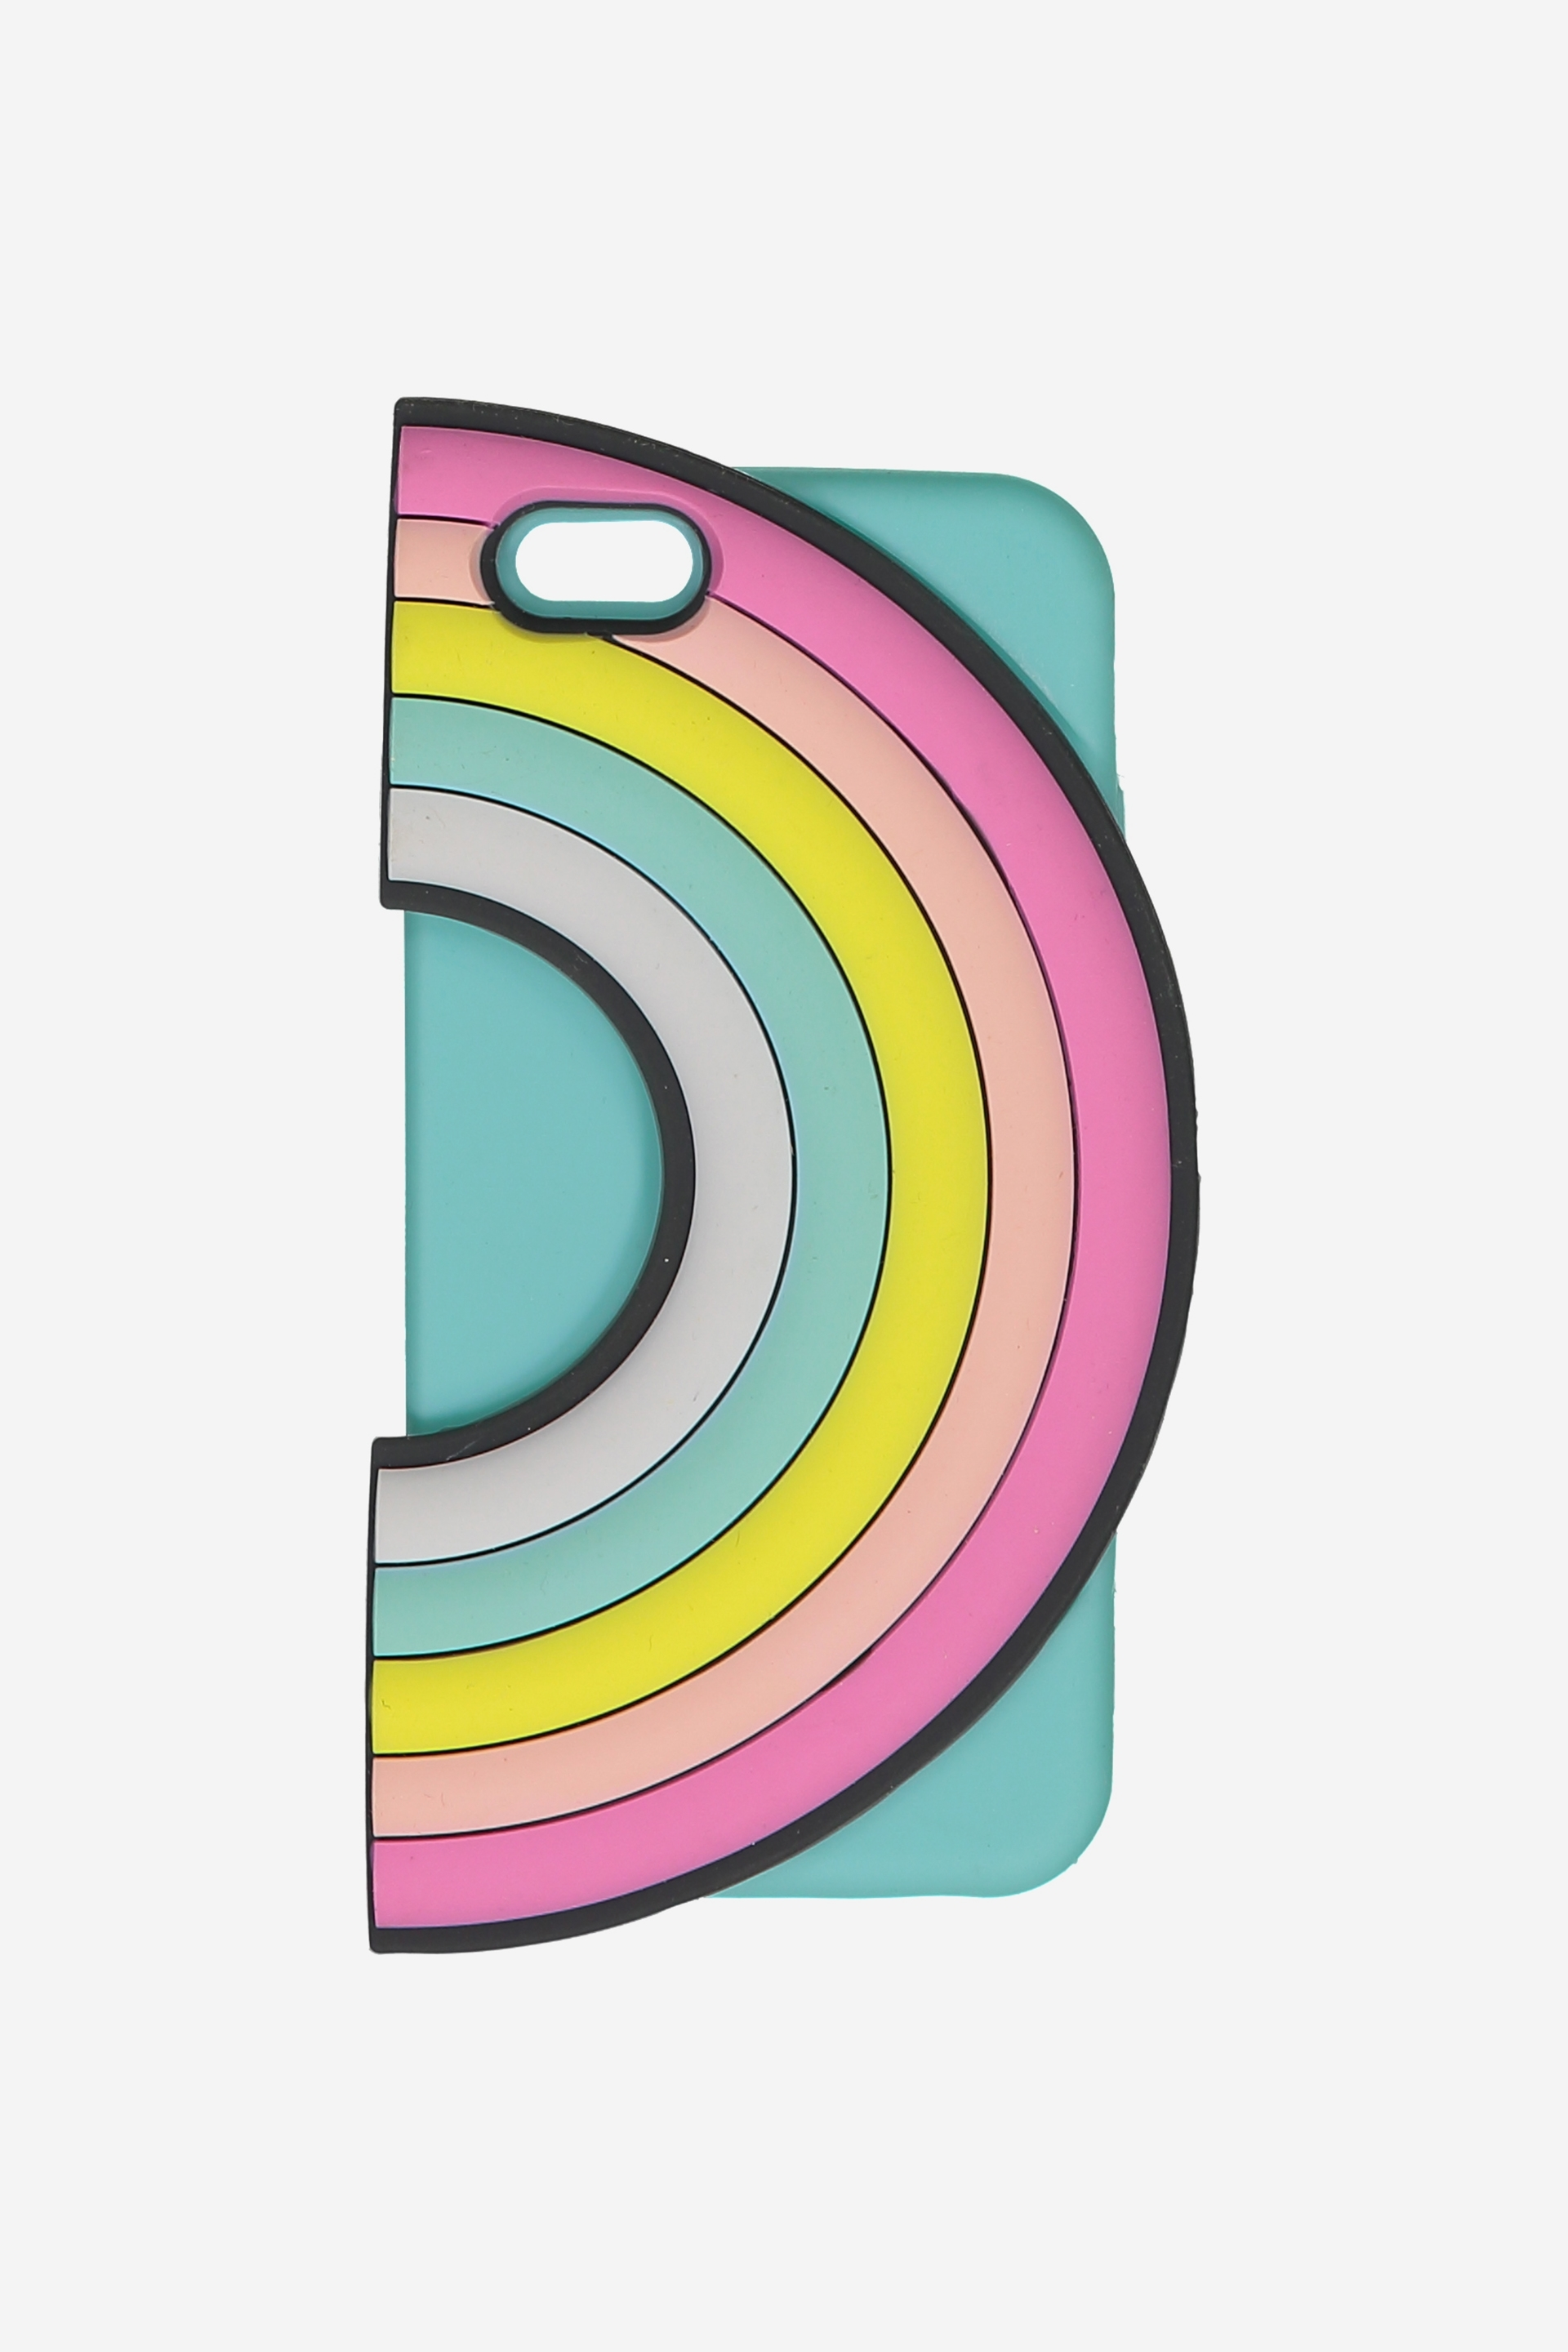 Typo - Shaped Silicon Phone Cover 6 - Rainbow 9351533349090